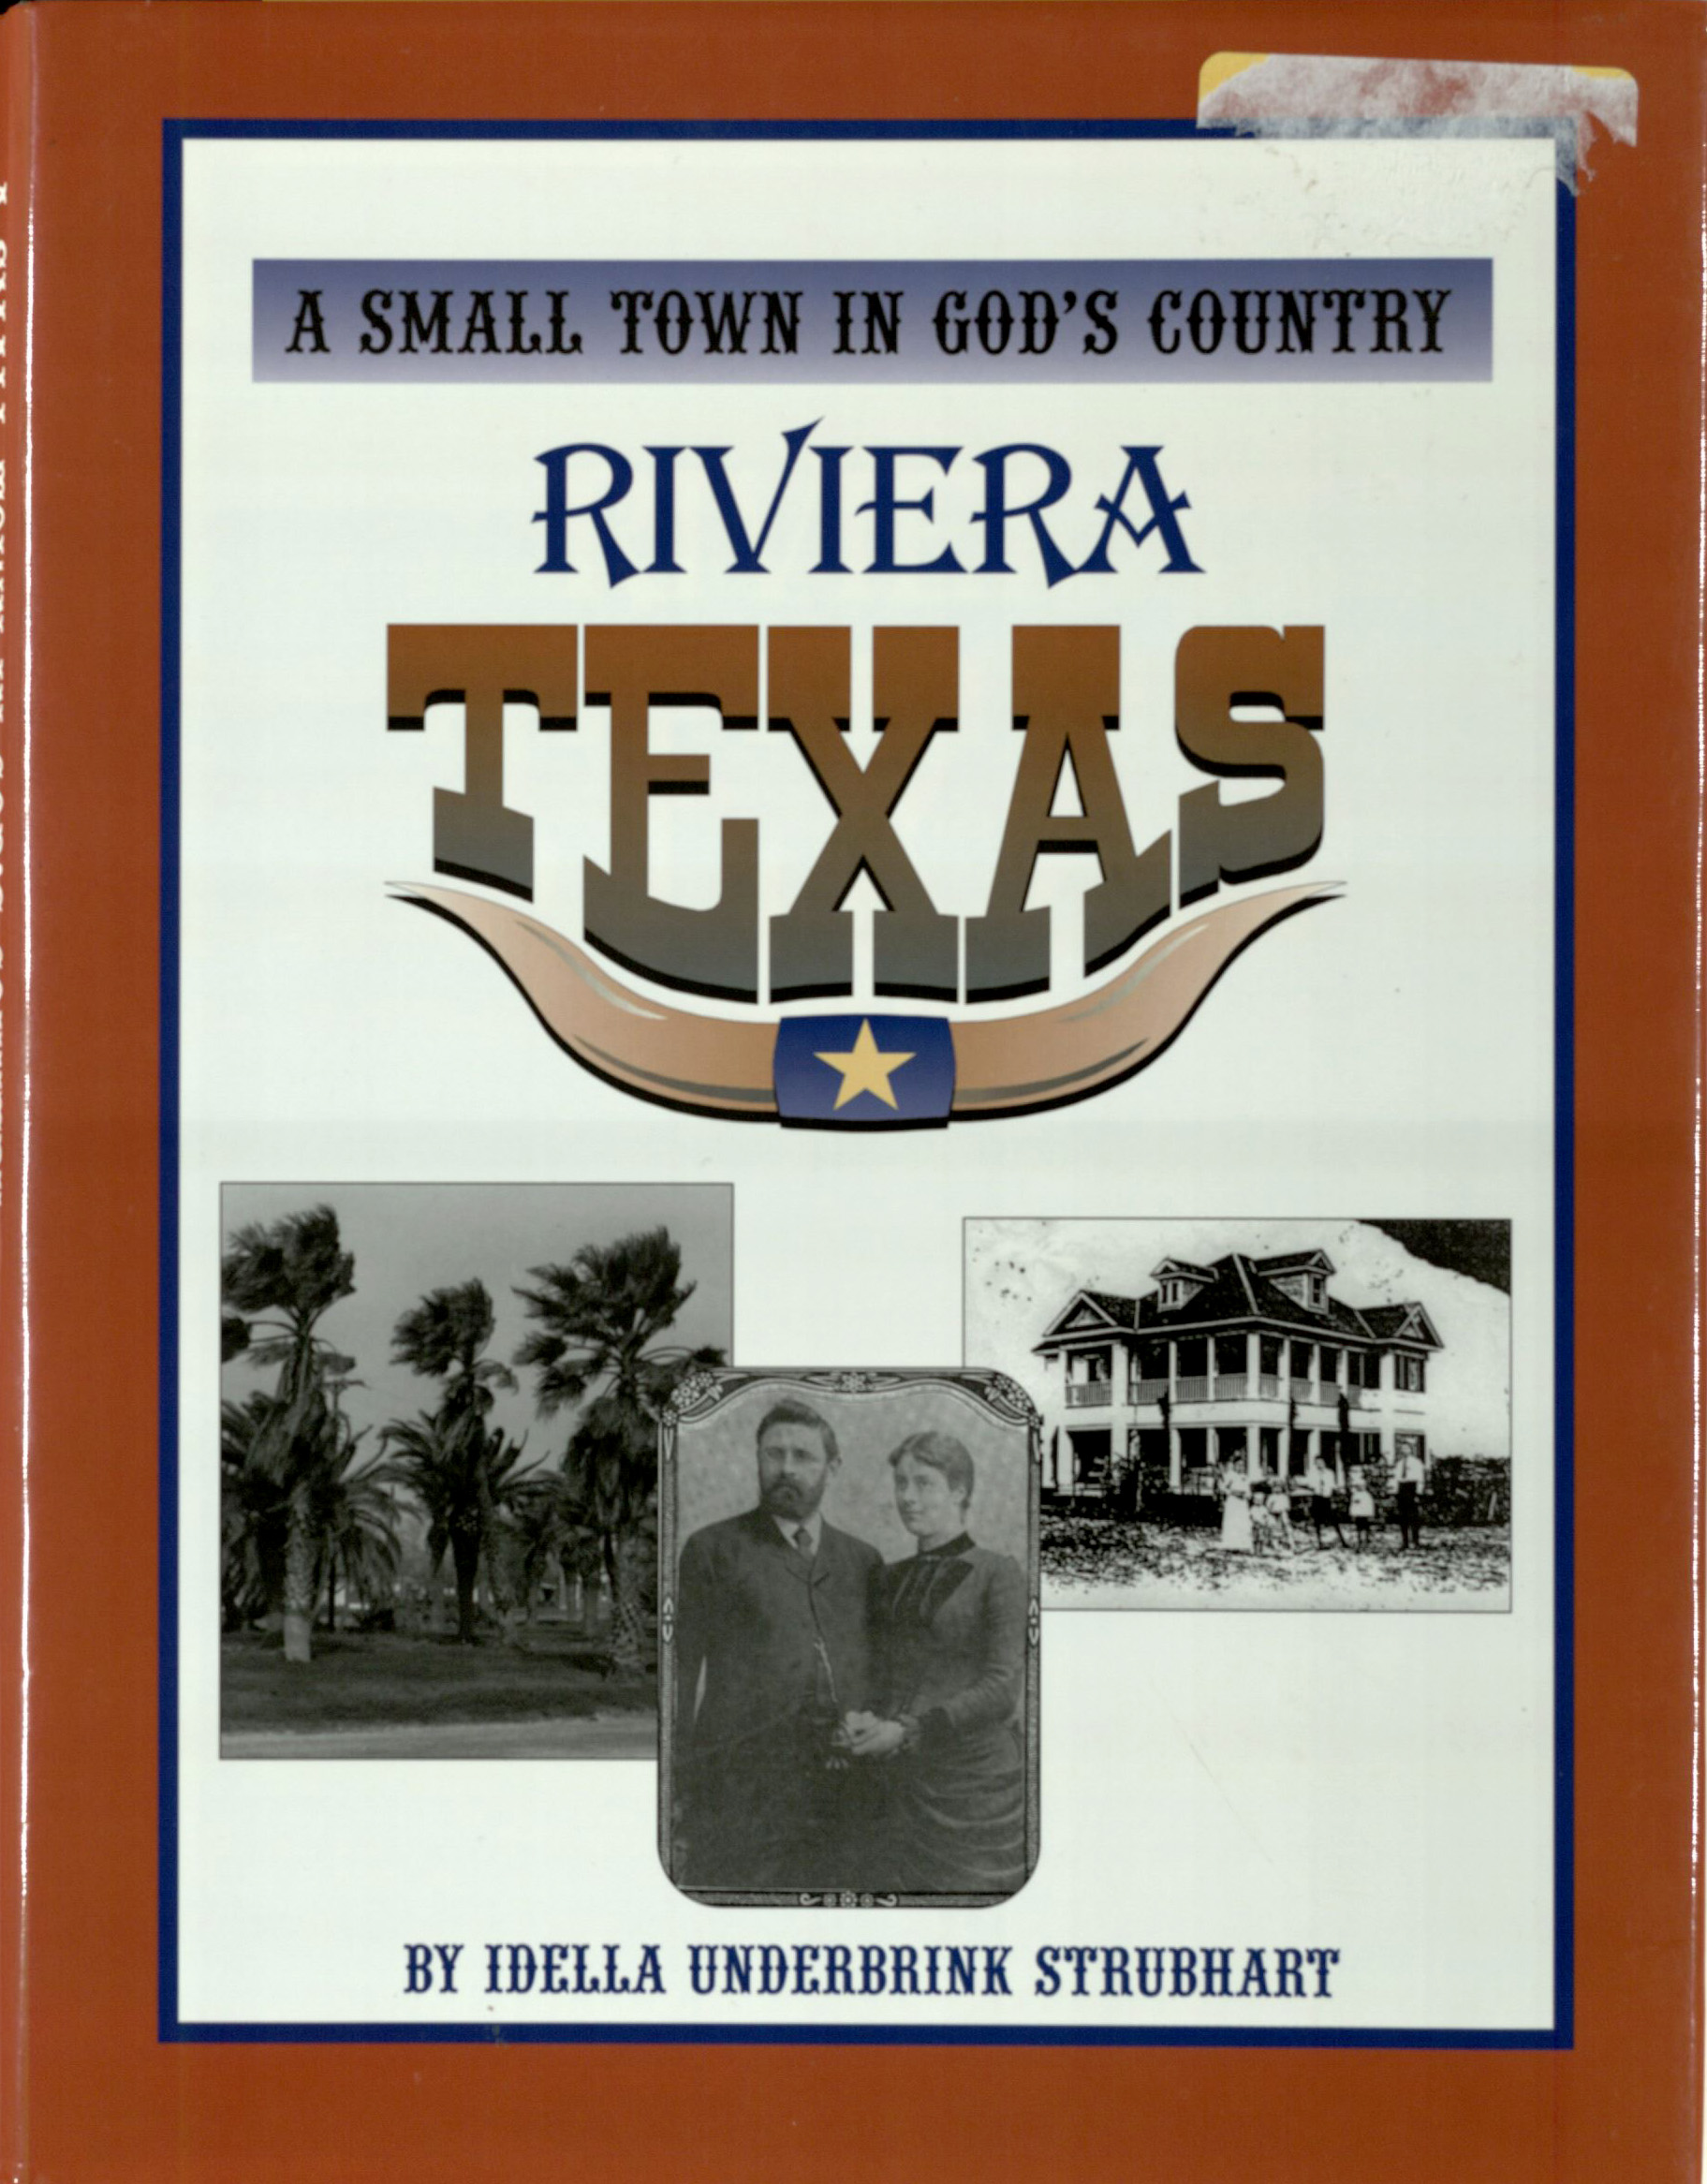 Strubhart, Idella Unterbrink. A Small Town in God's Country: Riviera, Texas: Commemorating 90 Years of History, 1907-1997. Norcross, Georgia: Sitton & Associates, [1997]. Print.